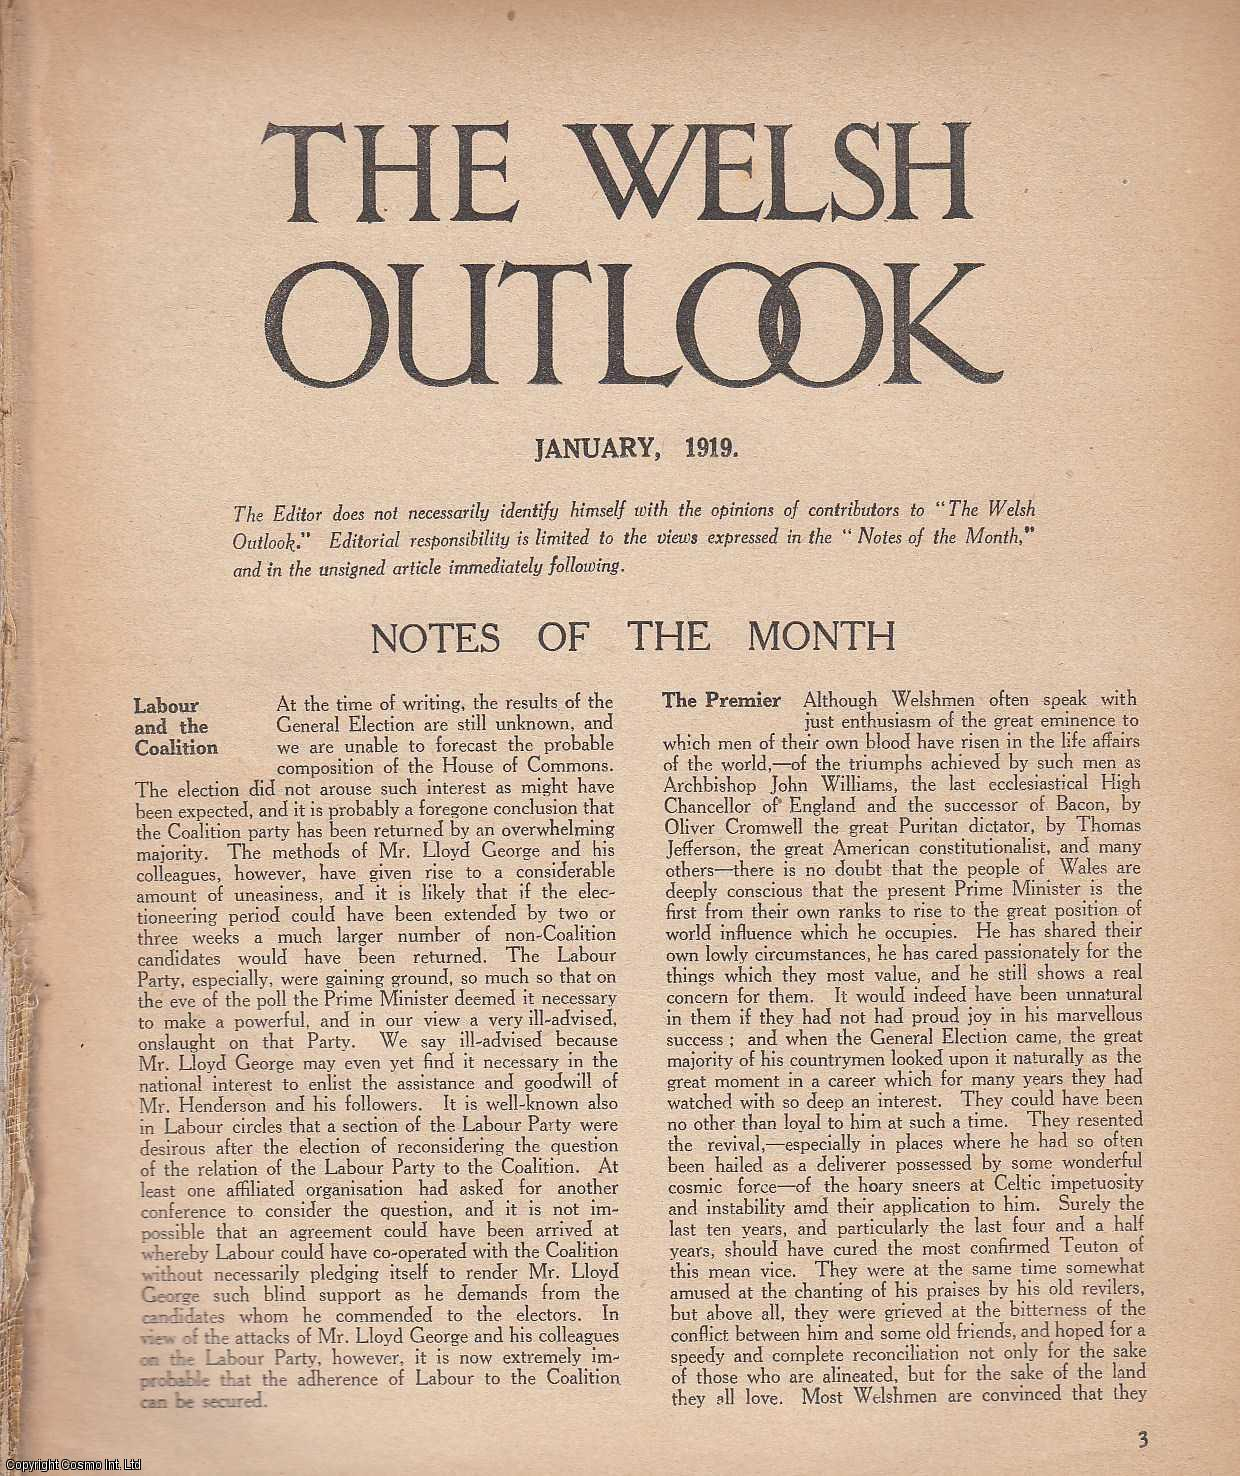 The Welsh Outlook. A Monthly Journal of National Social Progress. January, 1919. Contains; The Outlook: Wales and The General Election; Inshore Fishery by C.L. Walton; The Farmers Outlook by W.J. Percy Player; Christian Re-Union by Rev. J. Roland Pryce; Local Newspapers by J.O. Francis; A National Academy of Music by L.J. Roberts; Poems by Edward Thomas by P.H.T.; Anglo-Celt or Anglo-Saxon by Lilian Winstanley; The Y.M.C.A. and The Future by Gwilym Davies., Thomas Jones (Editor)